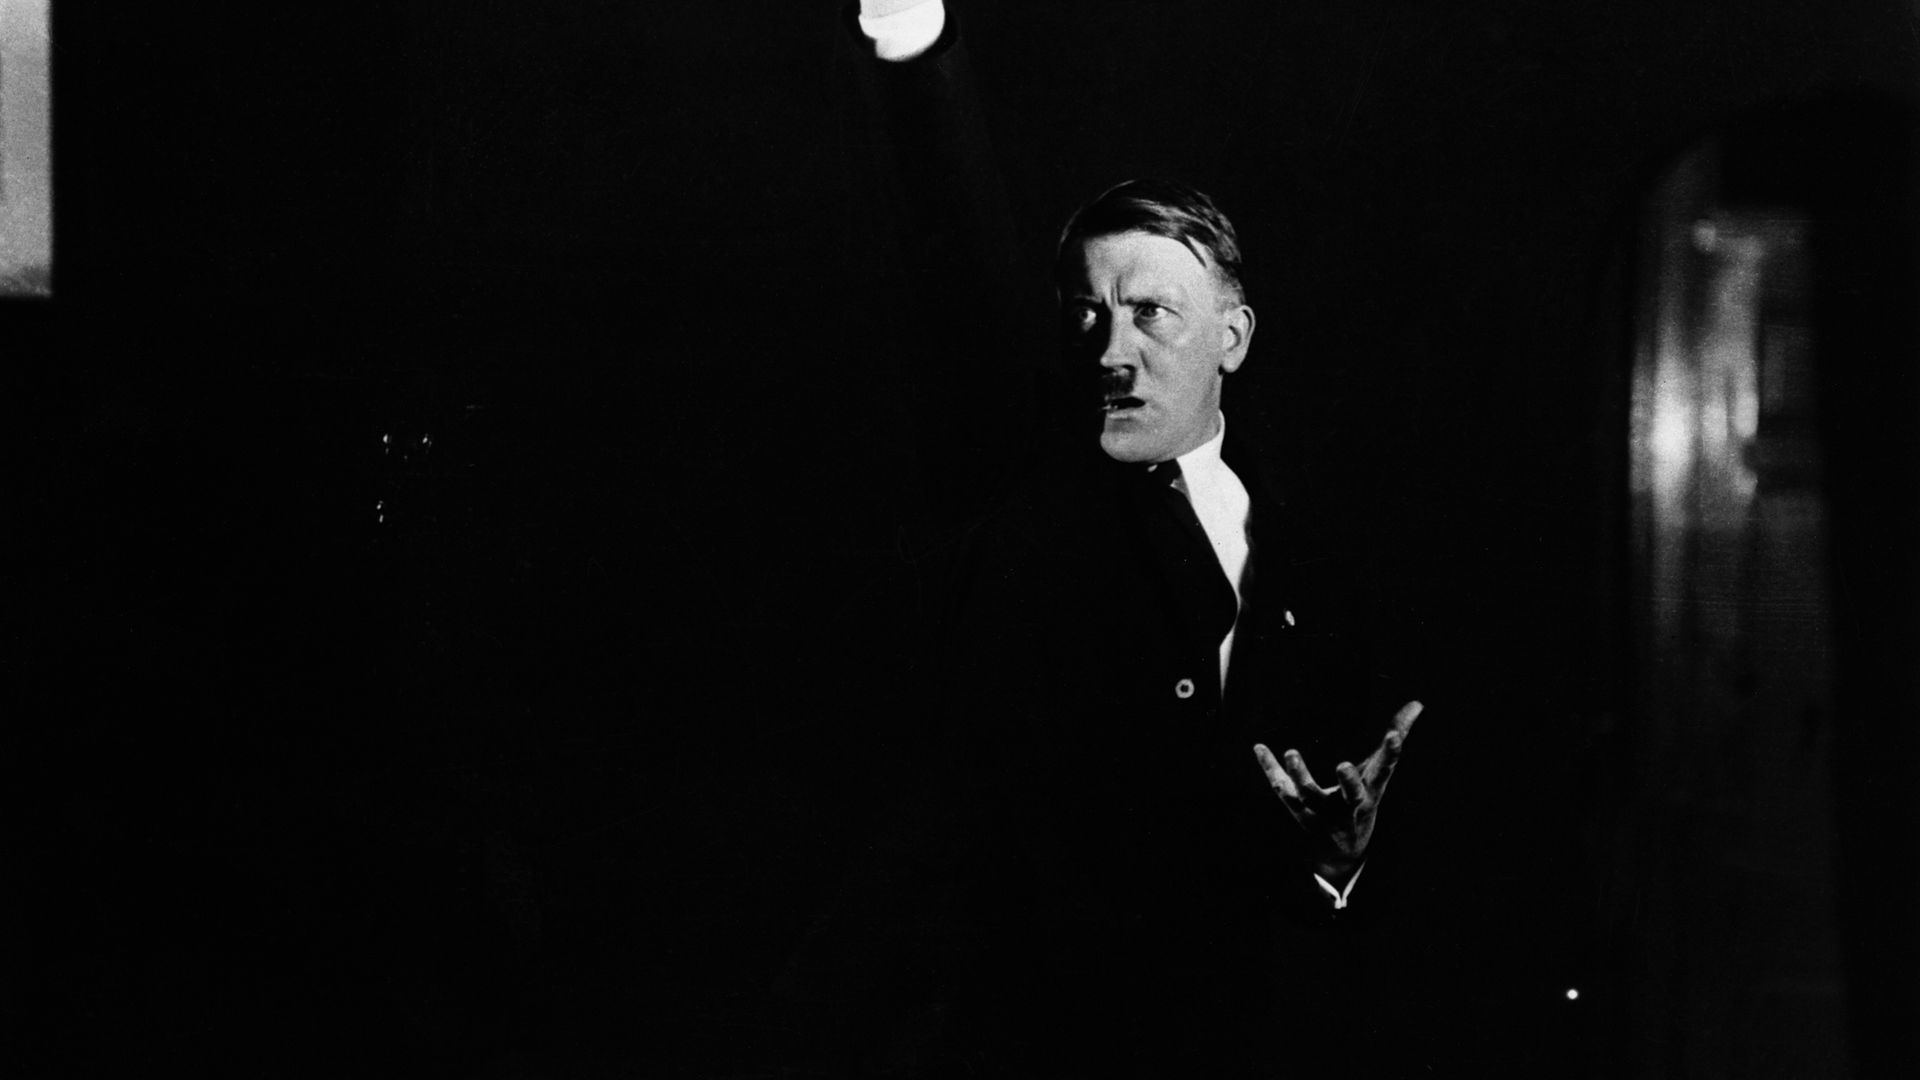 Hitler practices his speech making in front of a photographer so he can study the dramatic impact - Credit: Corbis via Getty Images